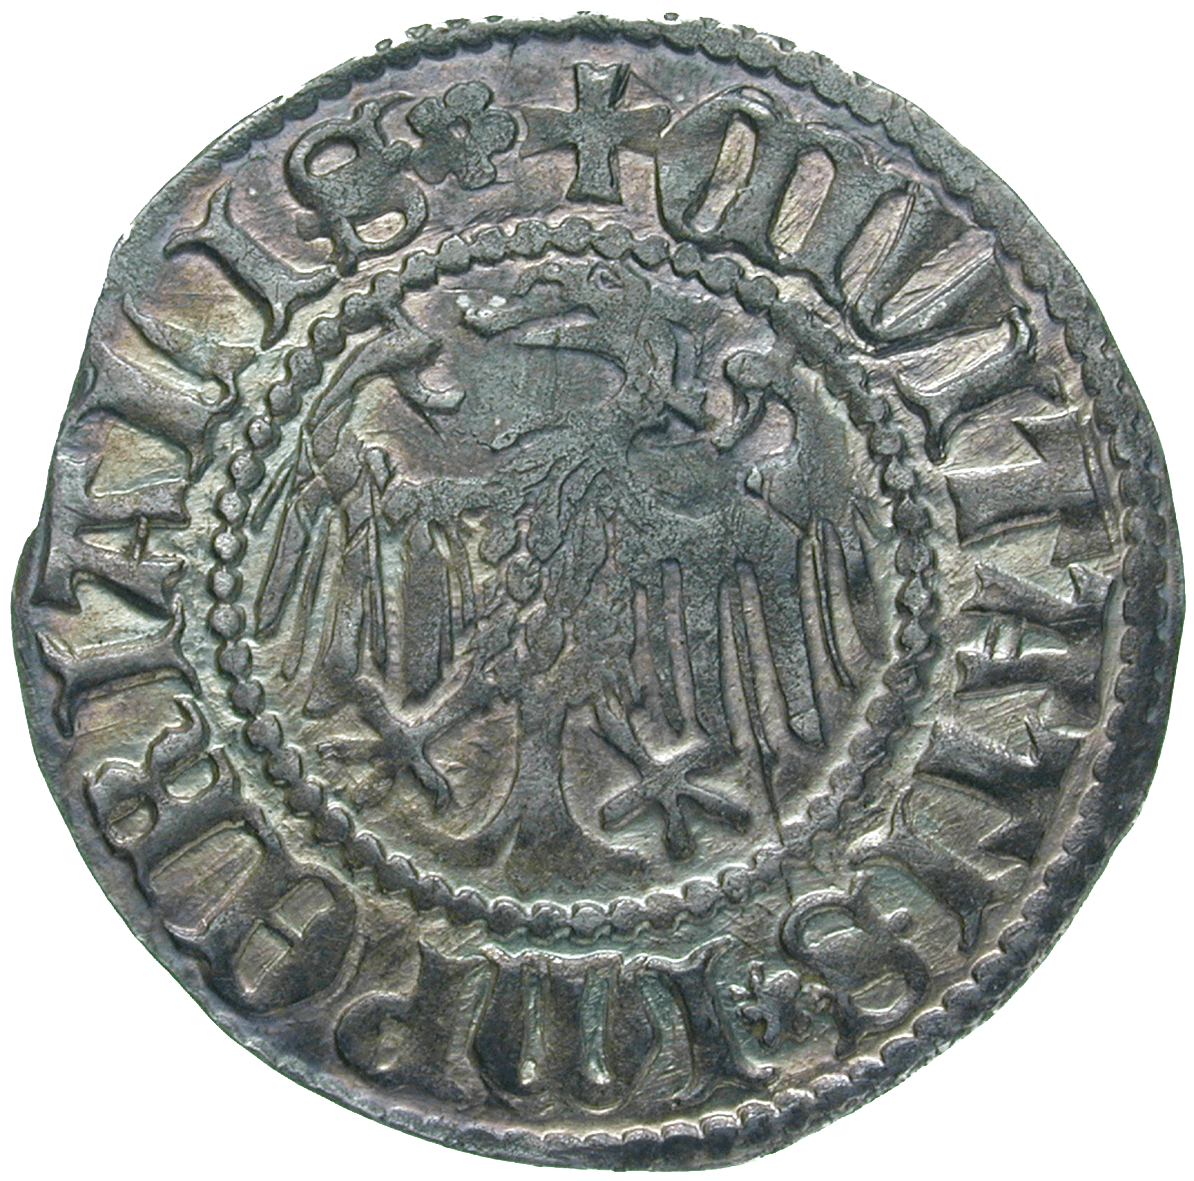 Holy Roman Empire, City of Zurich, Plappart (reverse)